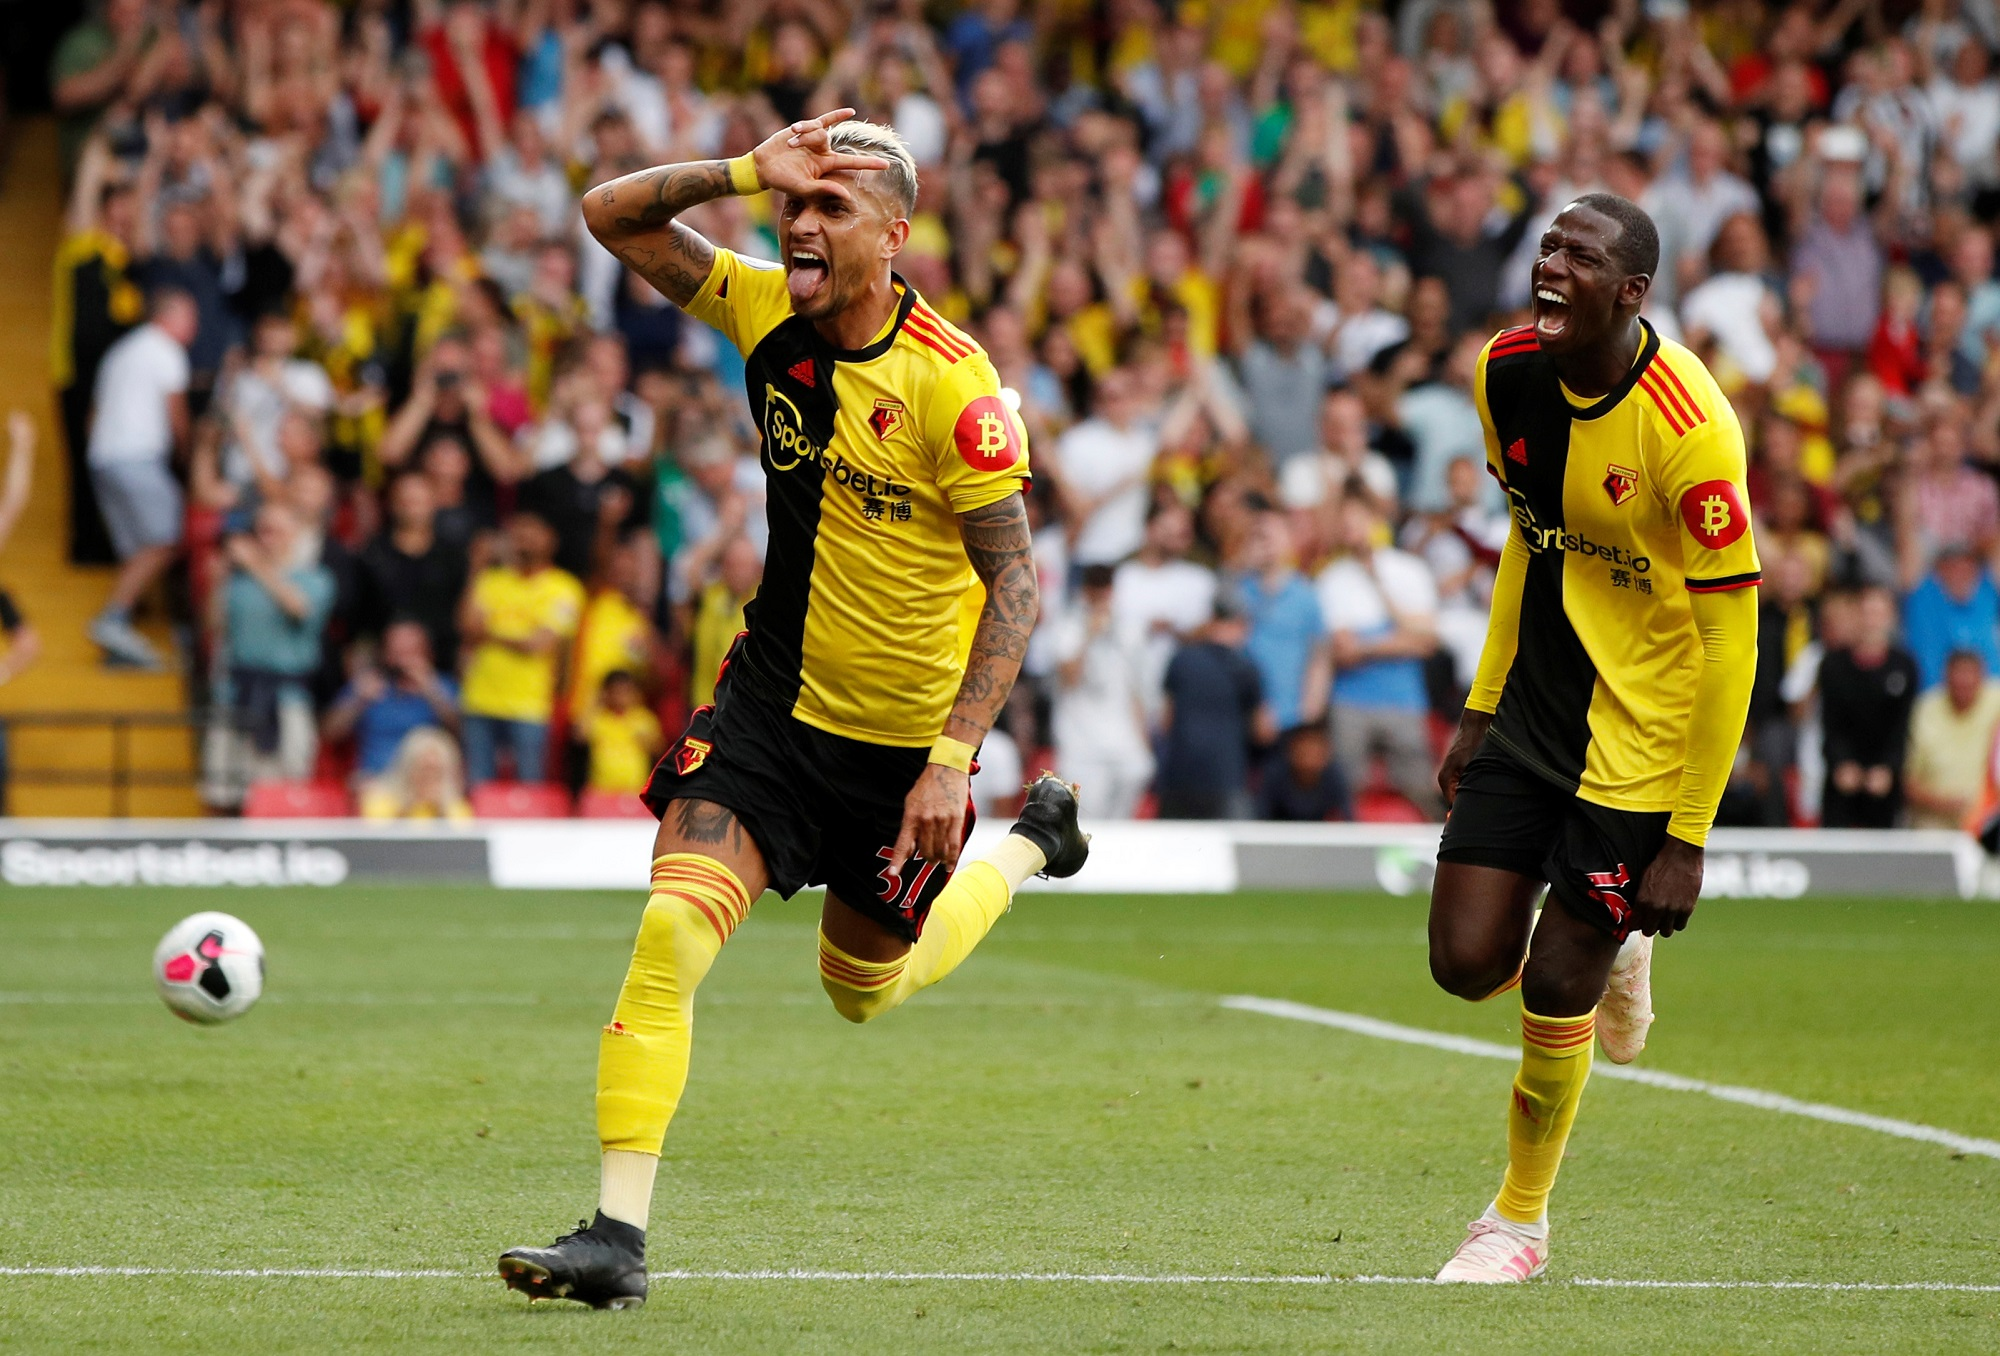 Watford FC Squad 2019: Watford first team all players 2019/20